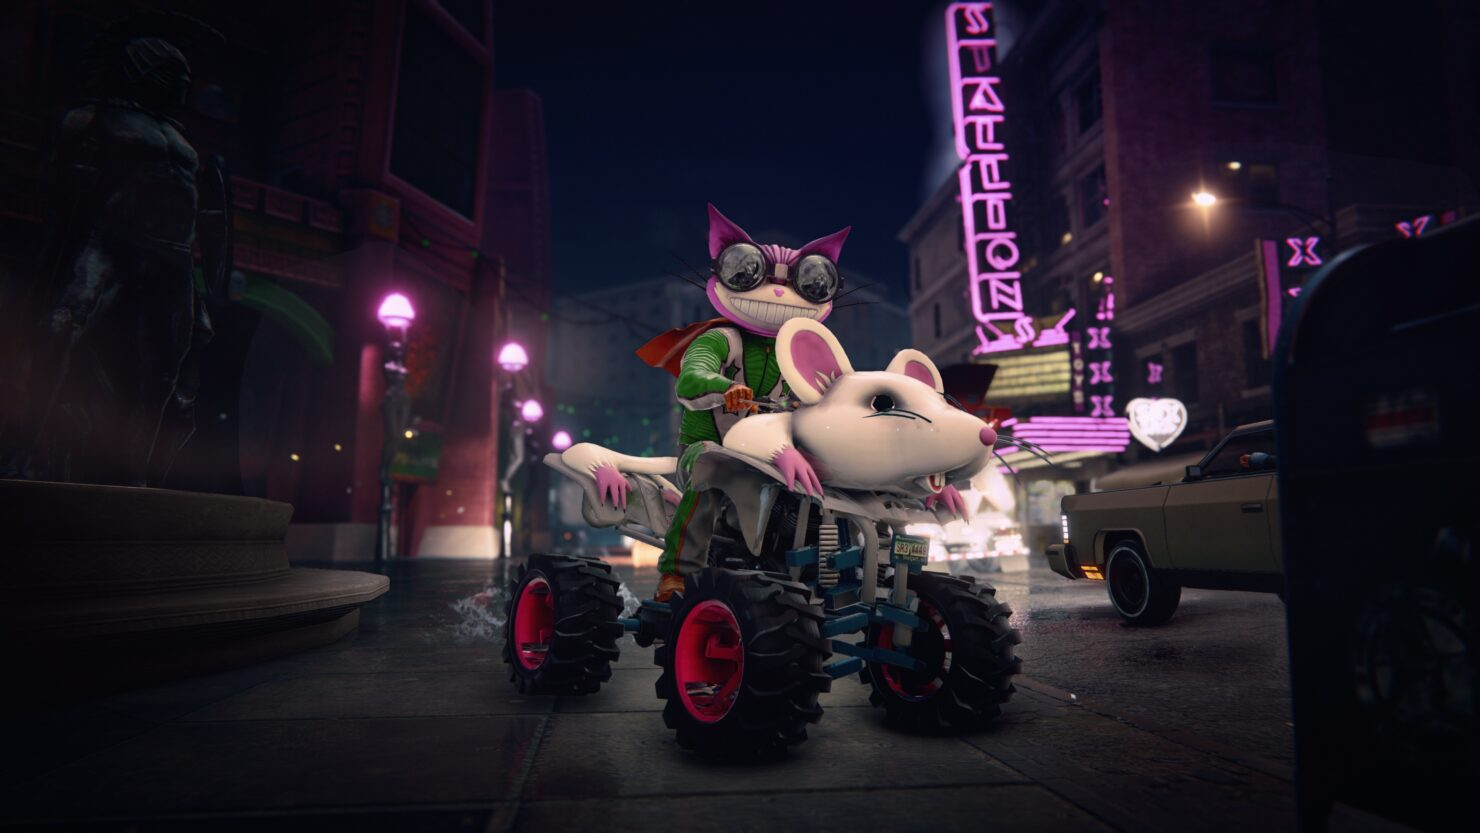 saints-row-the-third-remastered-preview-04-part-5-genki-2